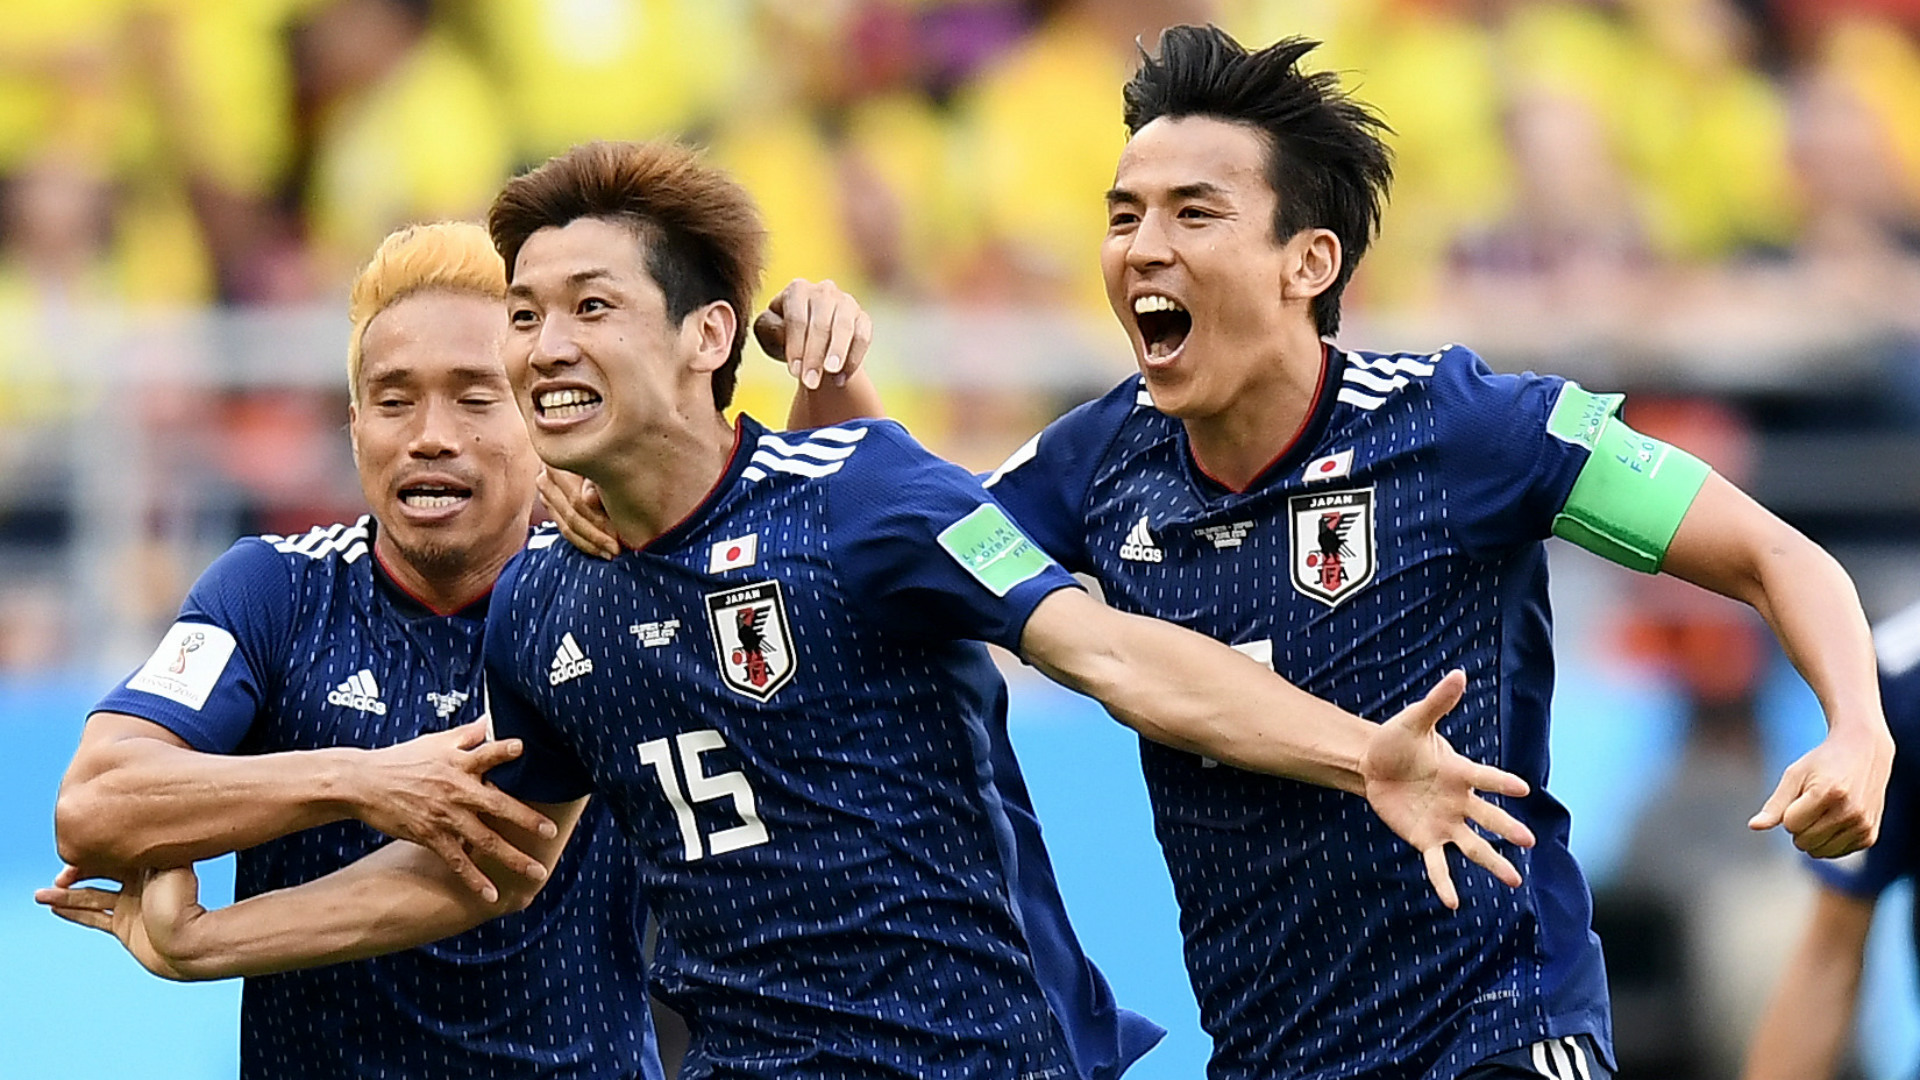 Japan coach had to gamble to stay in World Cup